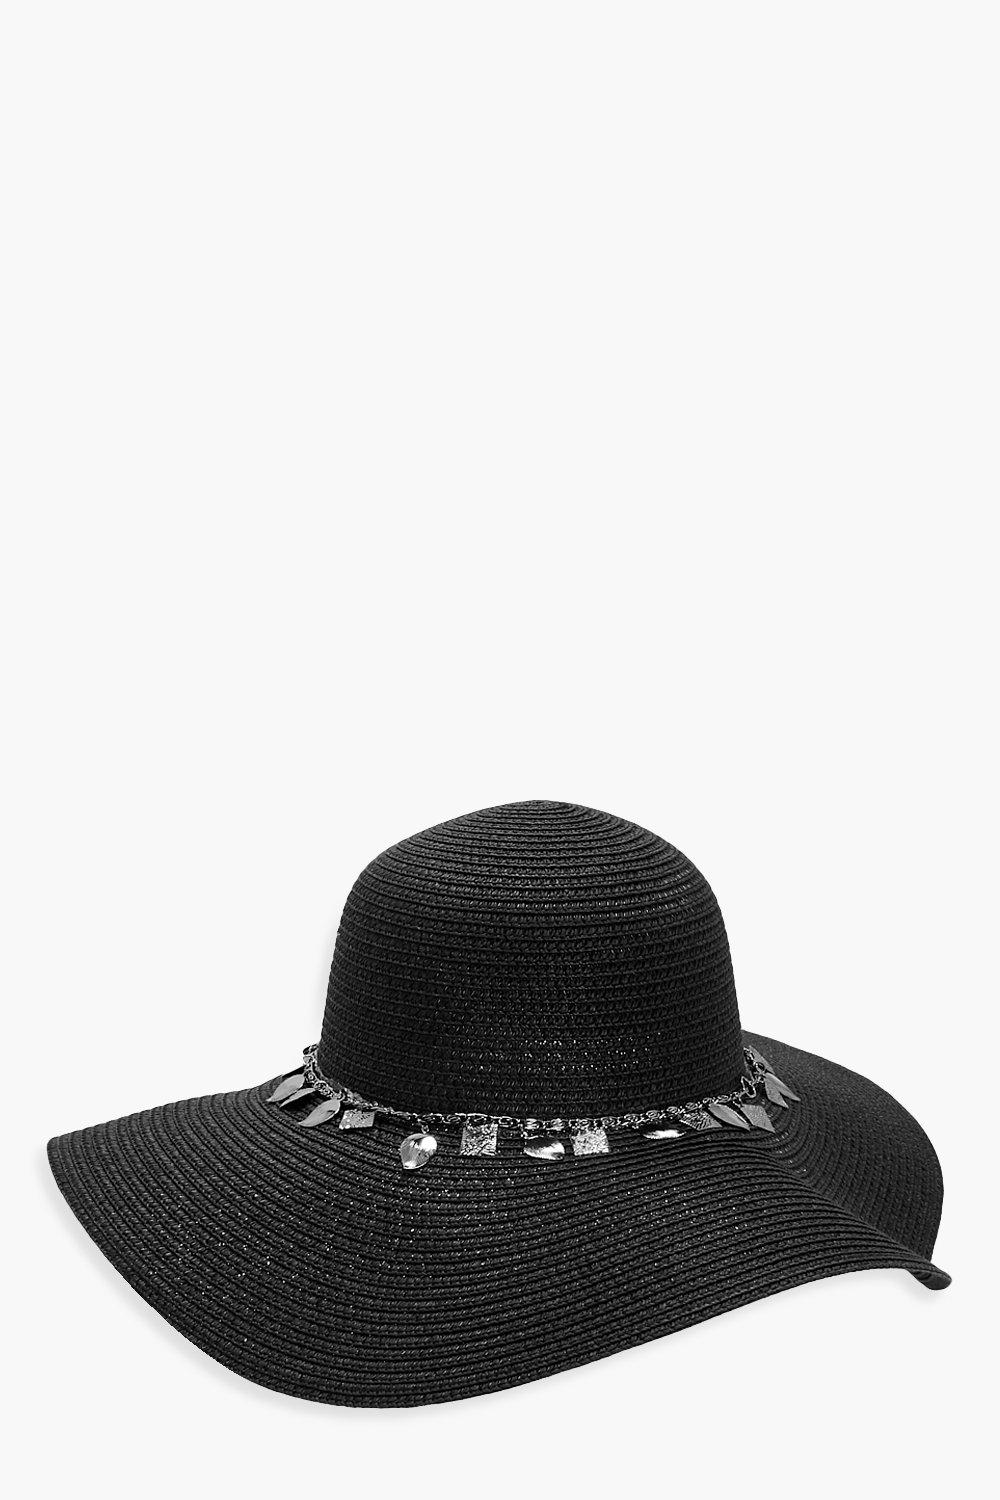 Coin Trim Floppy Hat - black - Alia Coin Trim Flop